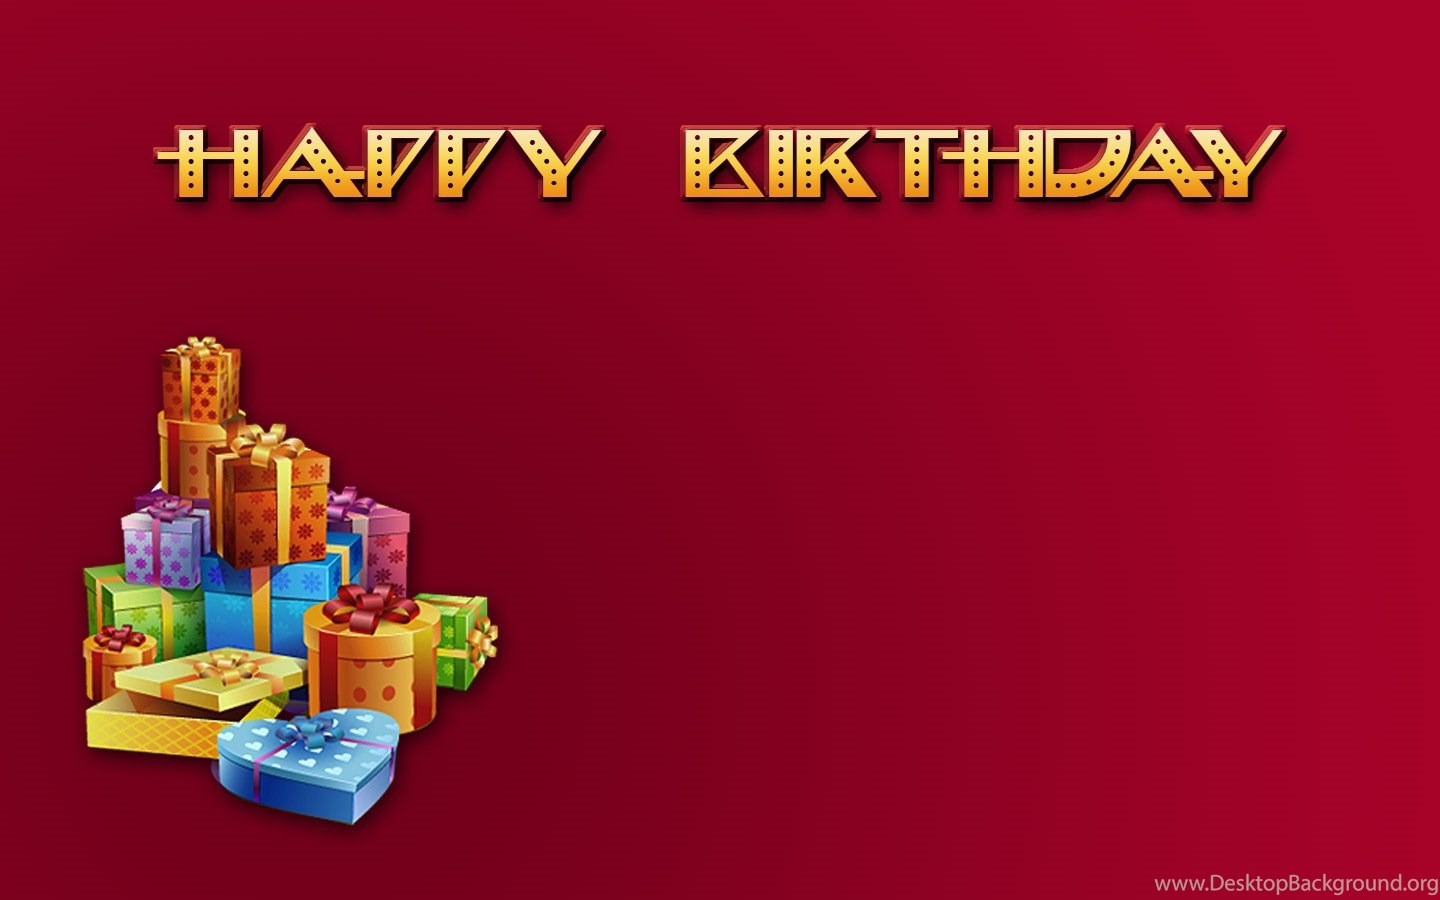 Happy Birthday Blank Cards Hd Wallpapers Desktop Background